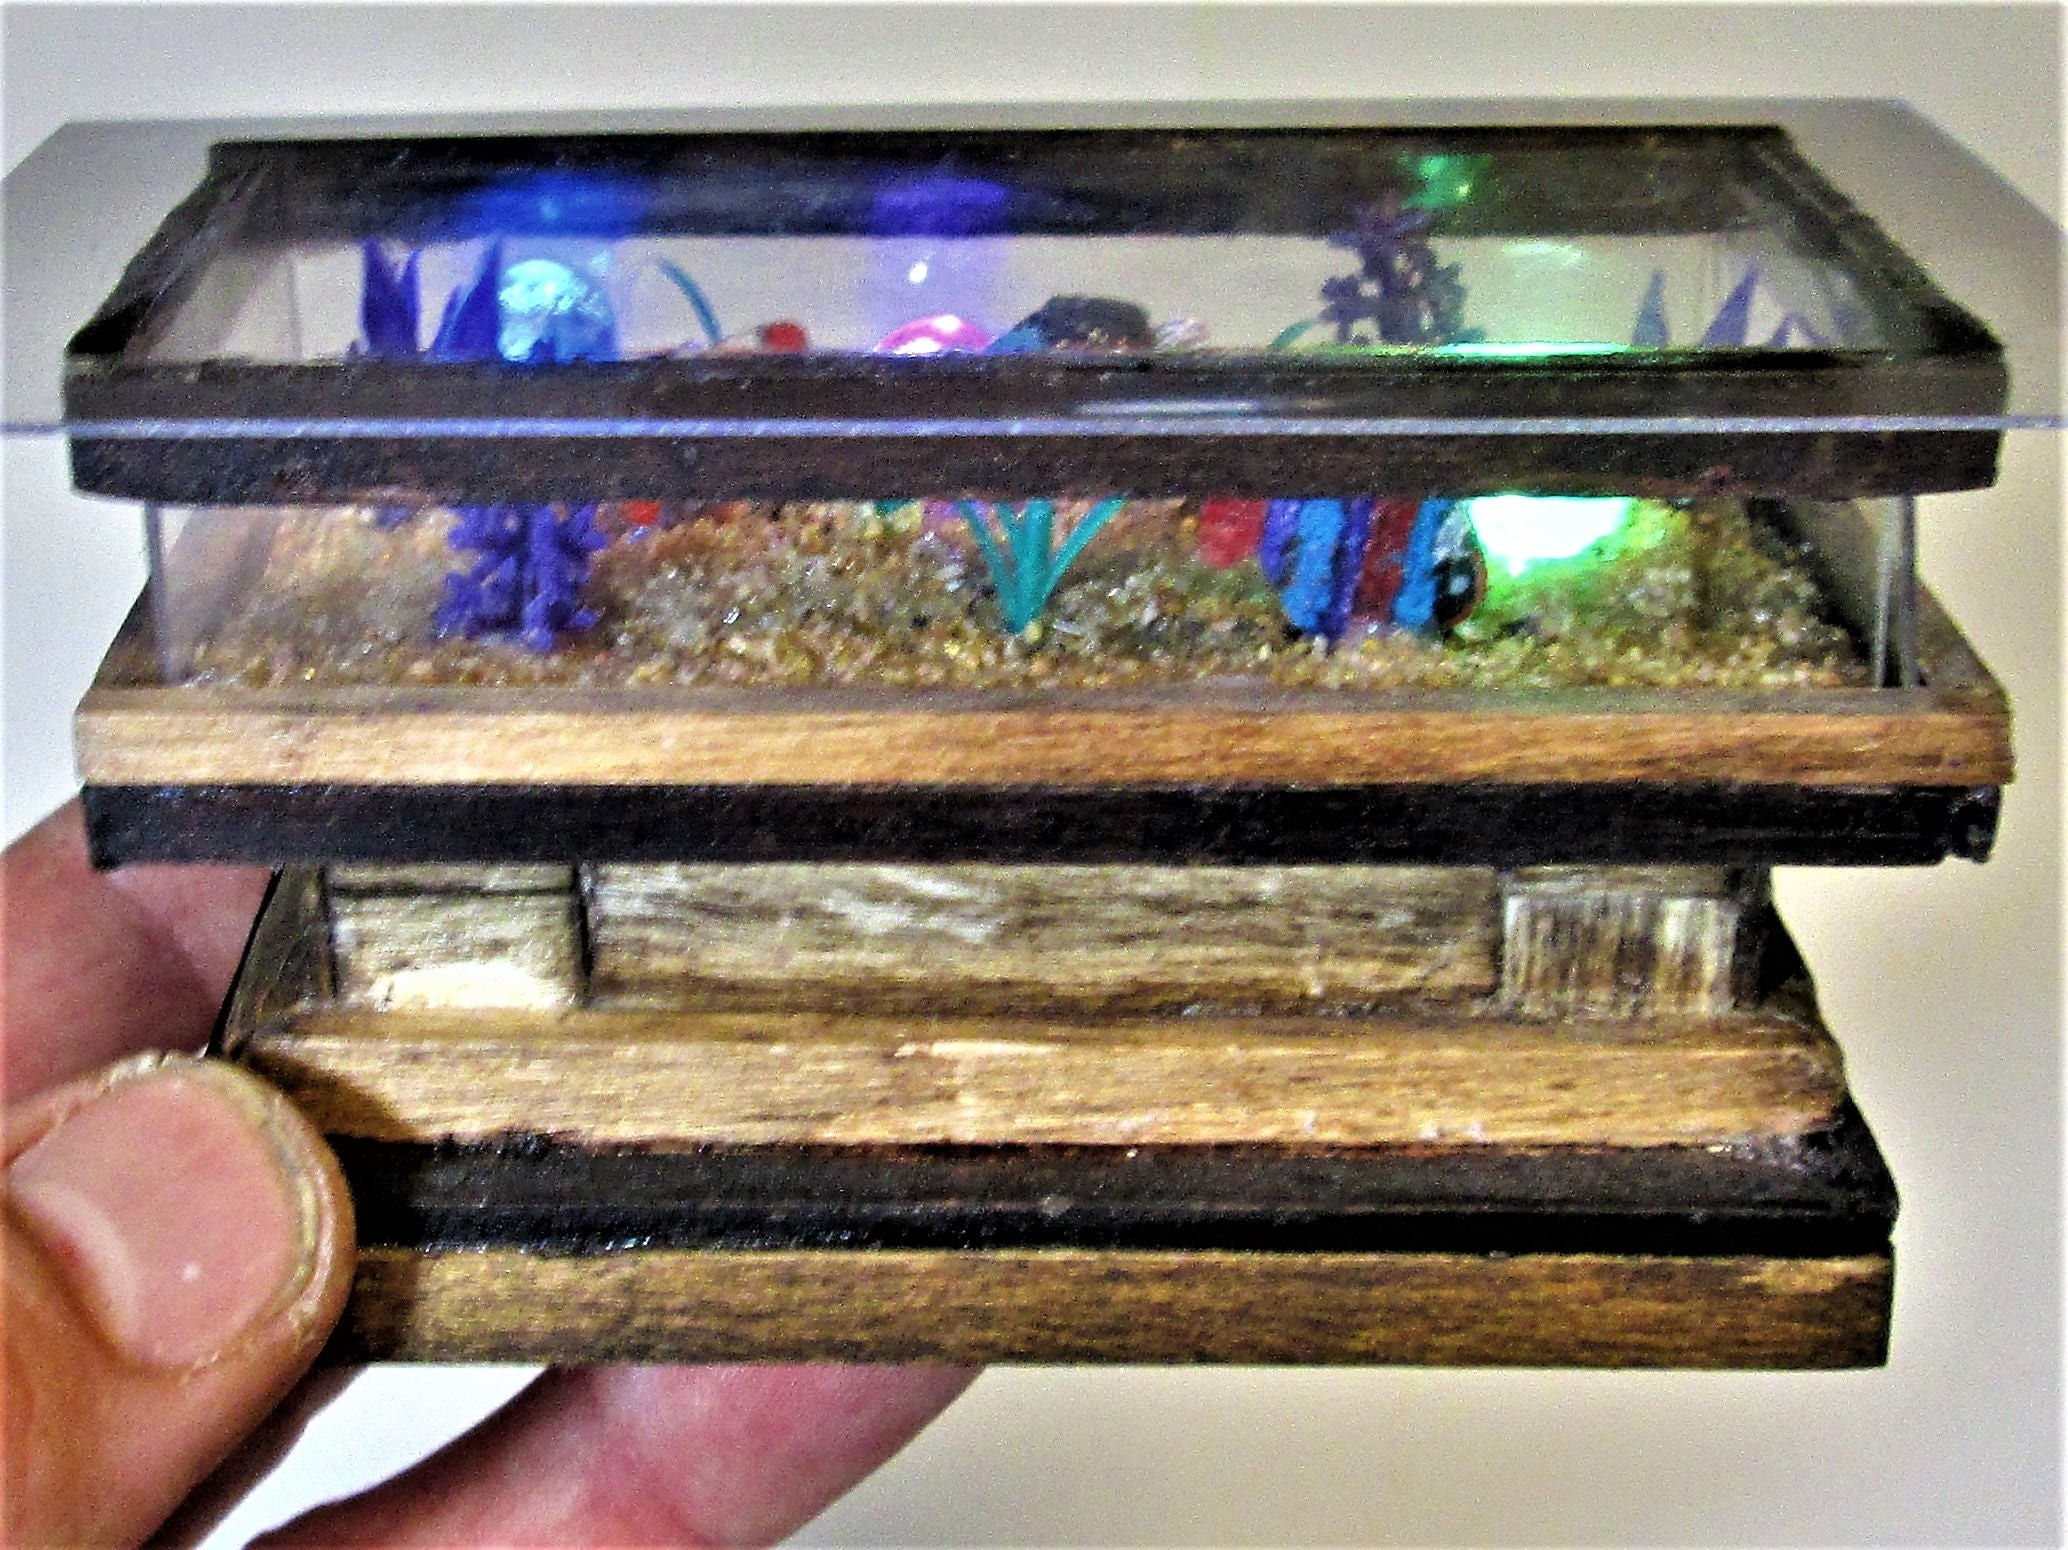 Aquarium Coffee Table Coffee Tables For Sale Source Aquarium